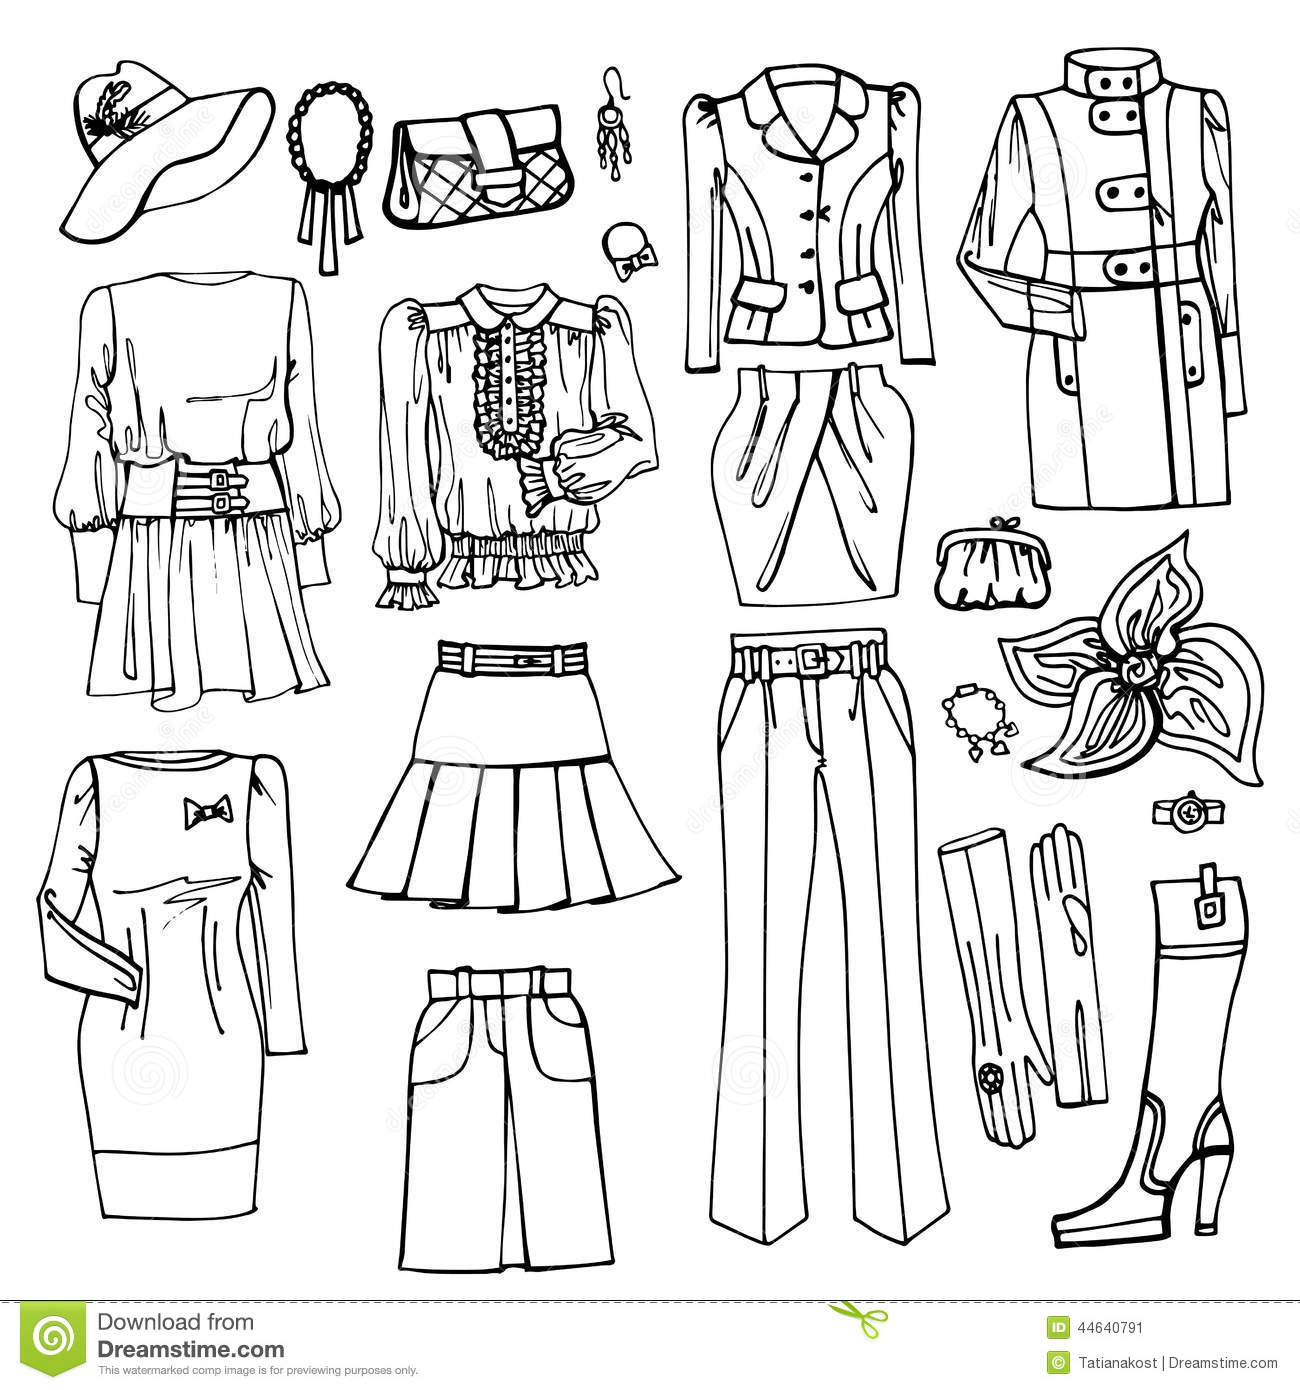 Outline Sketch.Females Clothing And Accessories Stock Vector ...